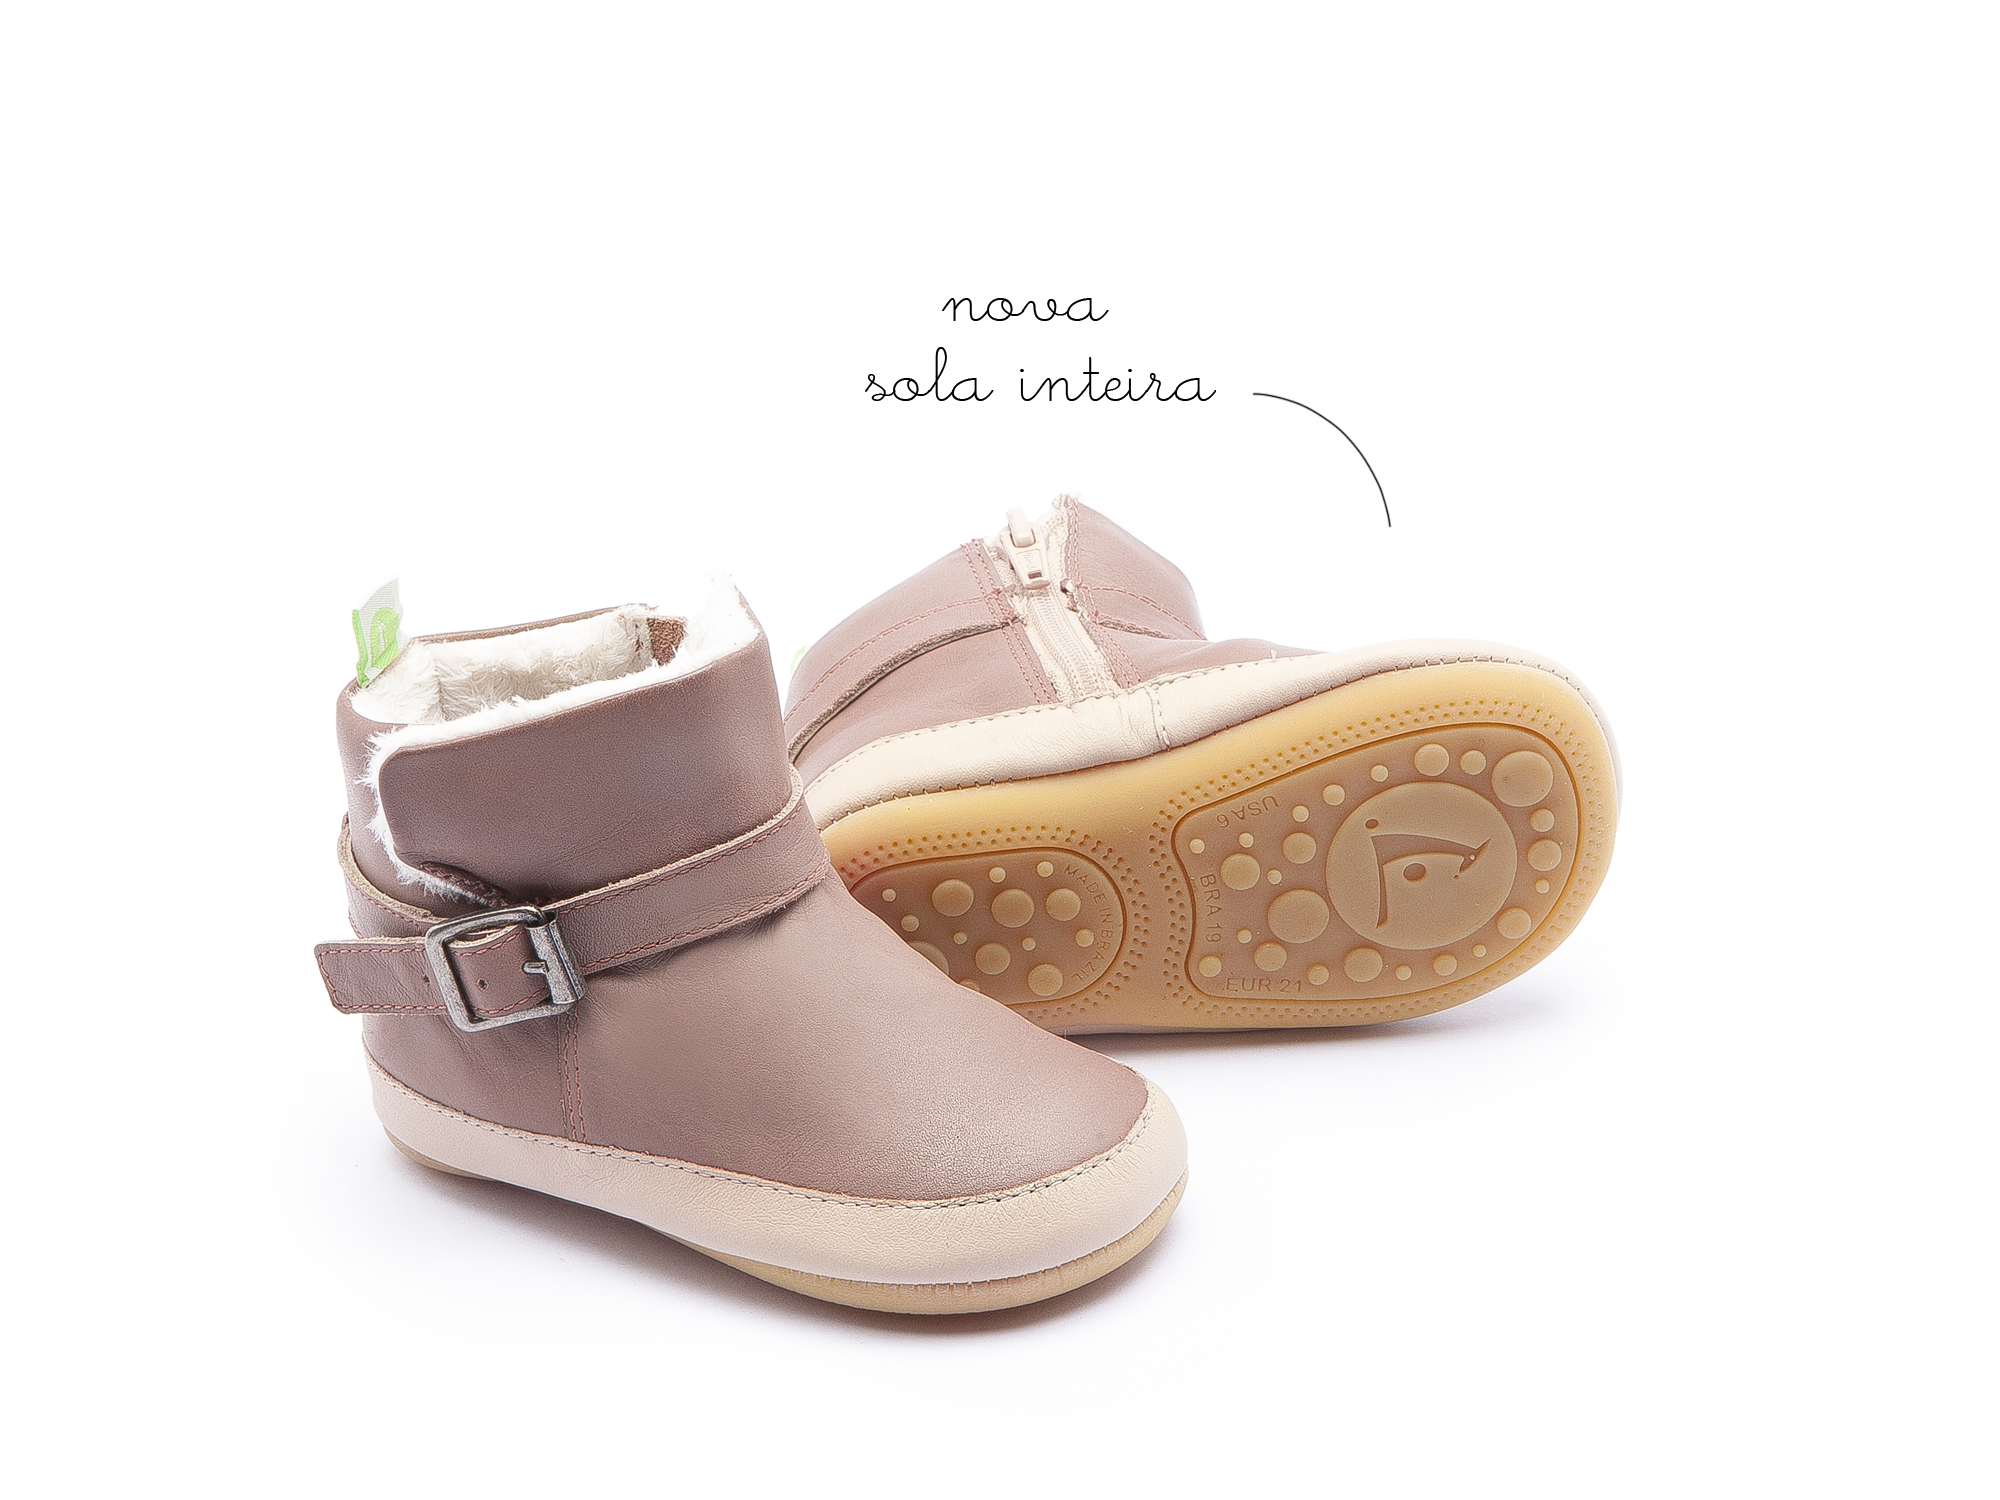 Bota Chilly Mogno Rose/ Yogurt Baby 0 à 2 anos - 0